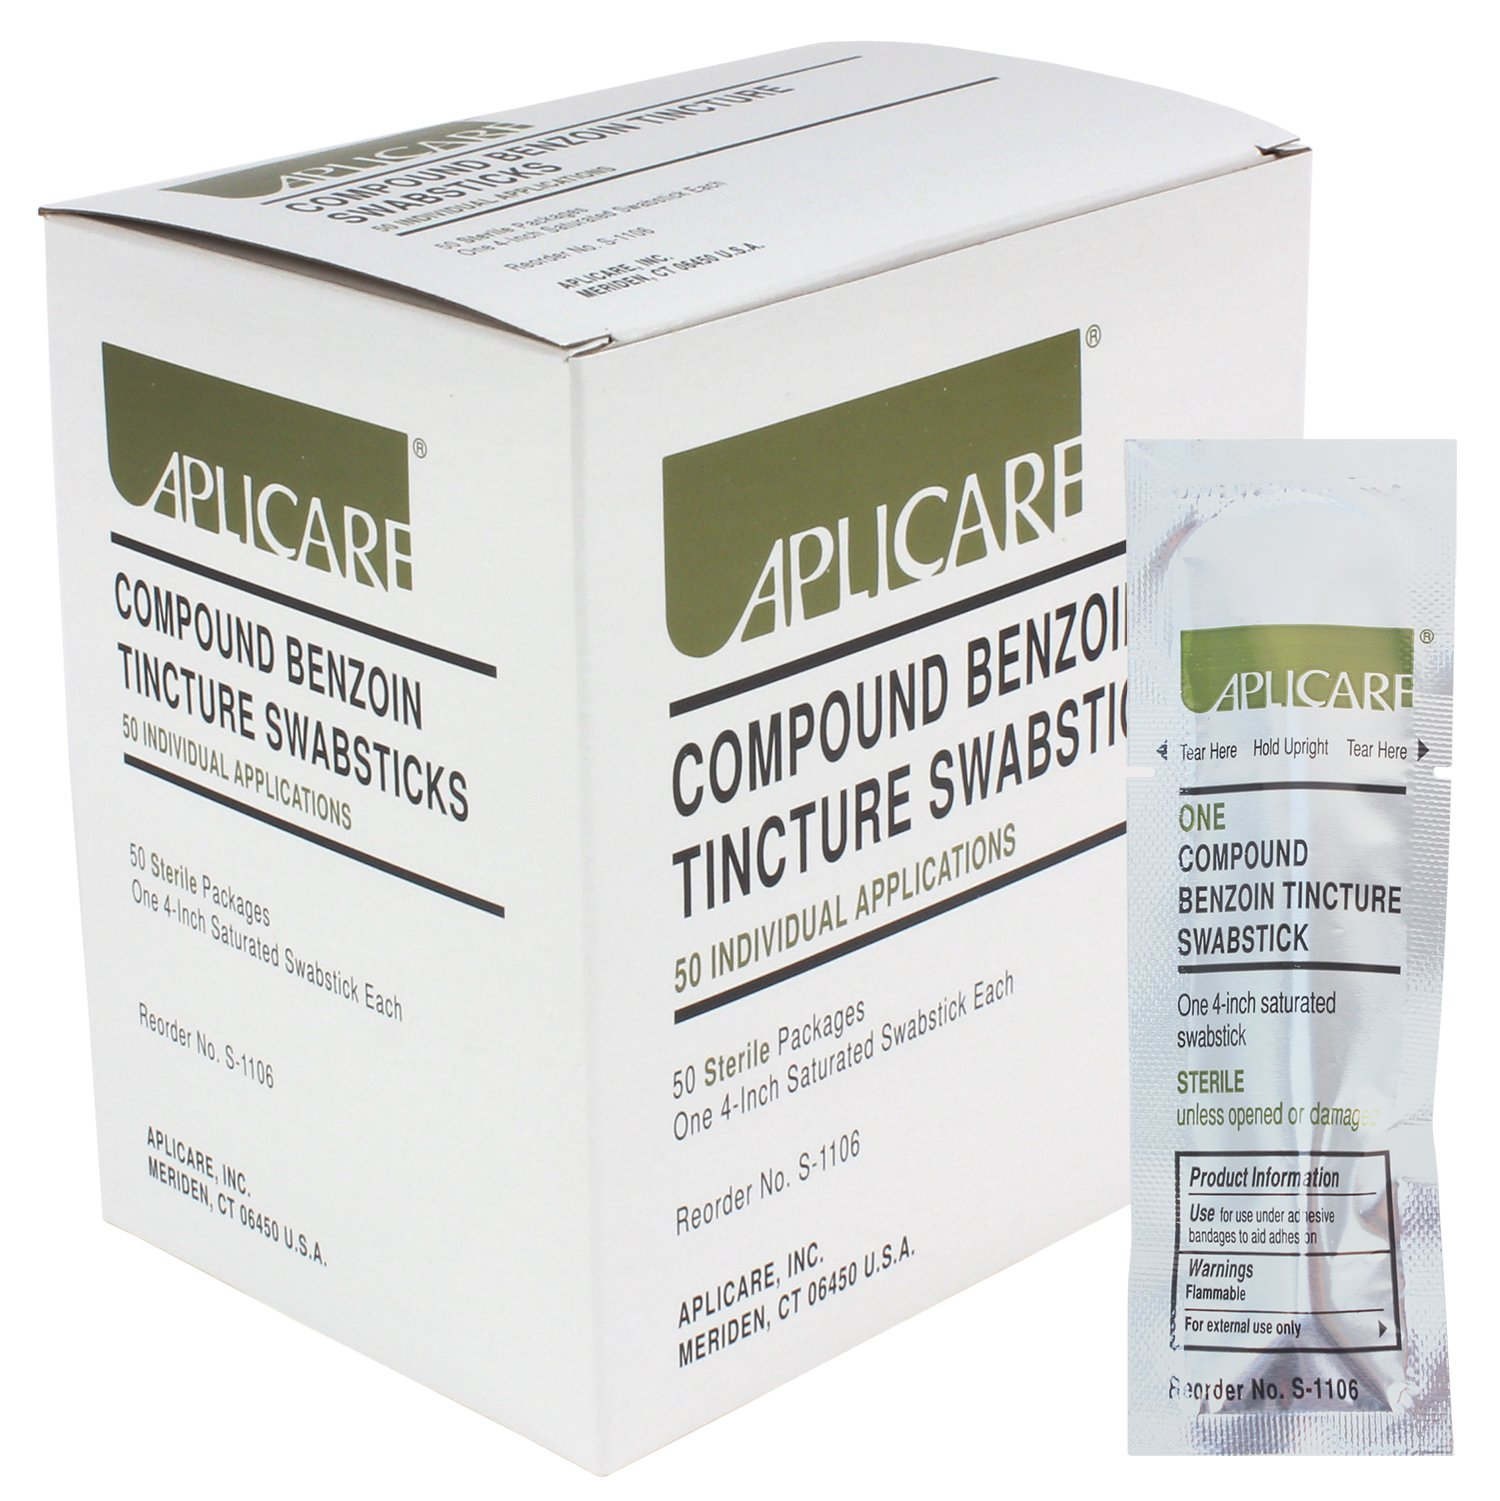 Aplicare Compound Benzoin Tincture Swabsticks 50 Individual Sterile Applications by Aplicare